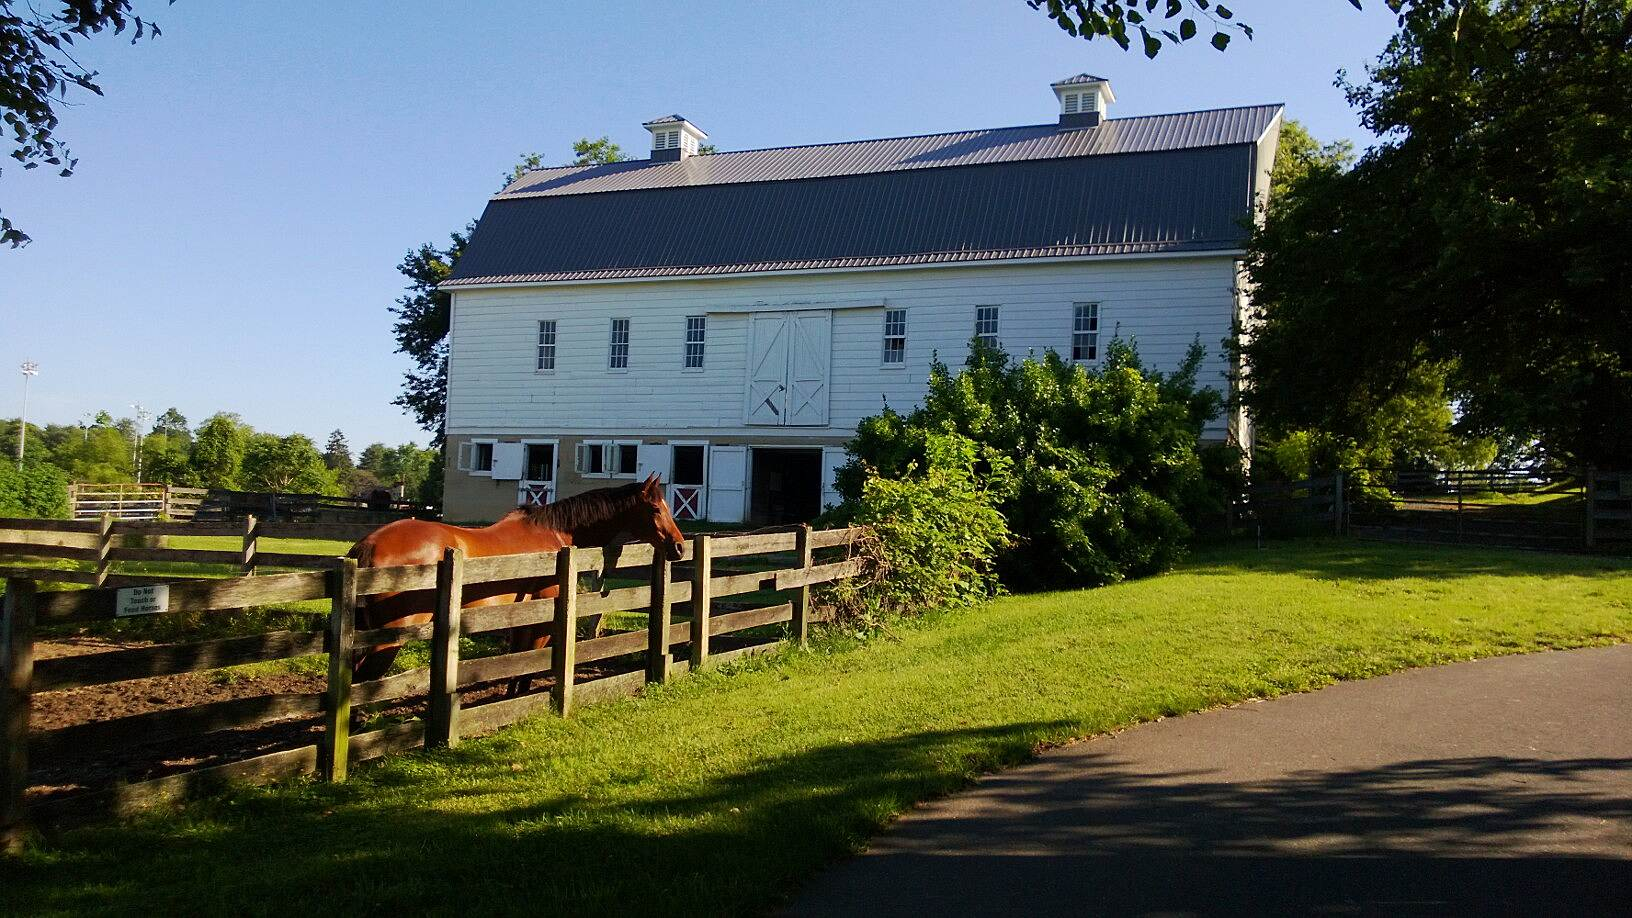 BWI Trail Farm house by the trail A still-in-use farm right by the trail side.